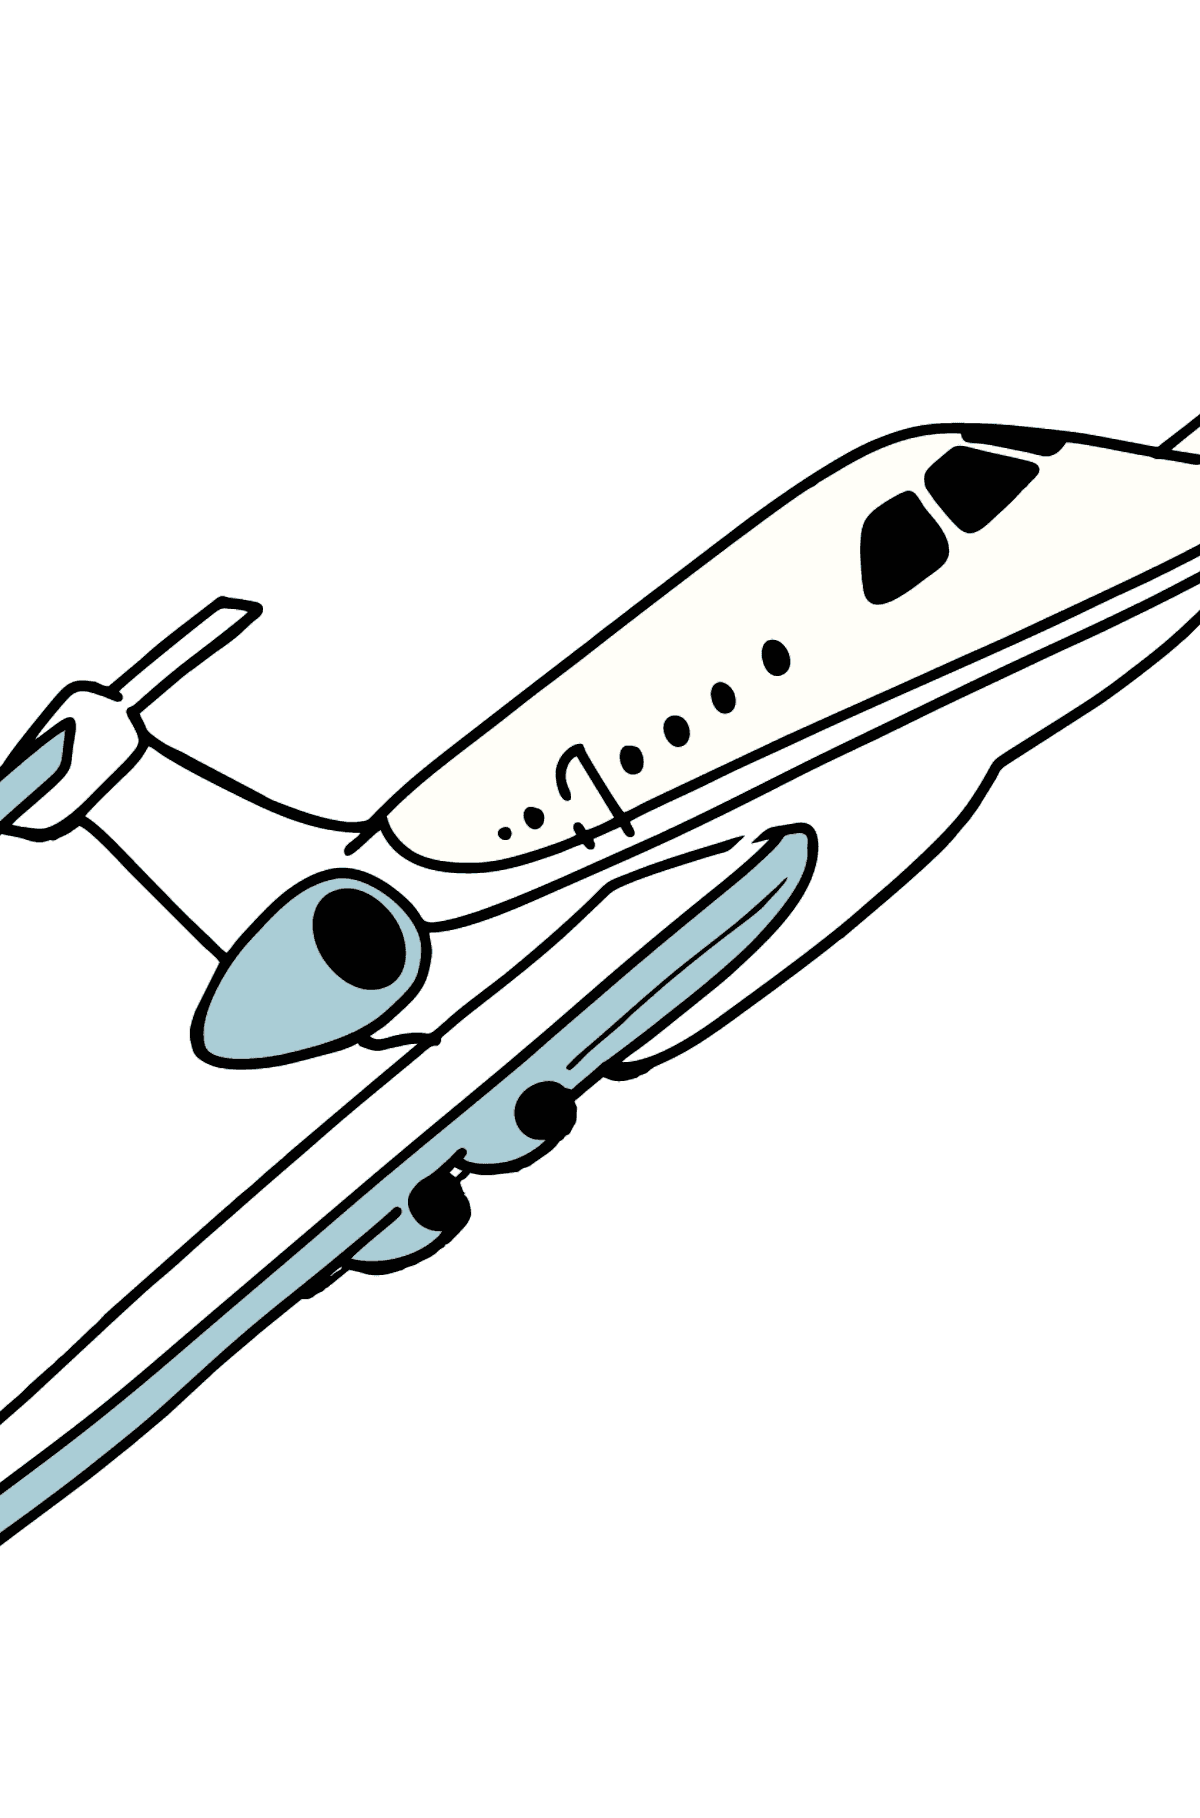 Airbus Airplane coloring page - Coloring Pages for Kids